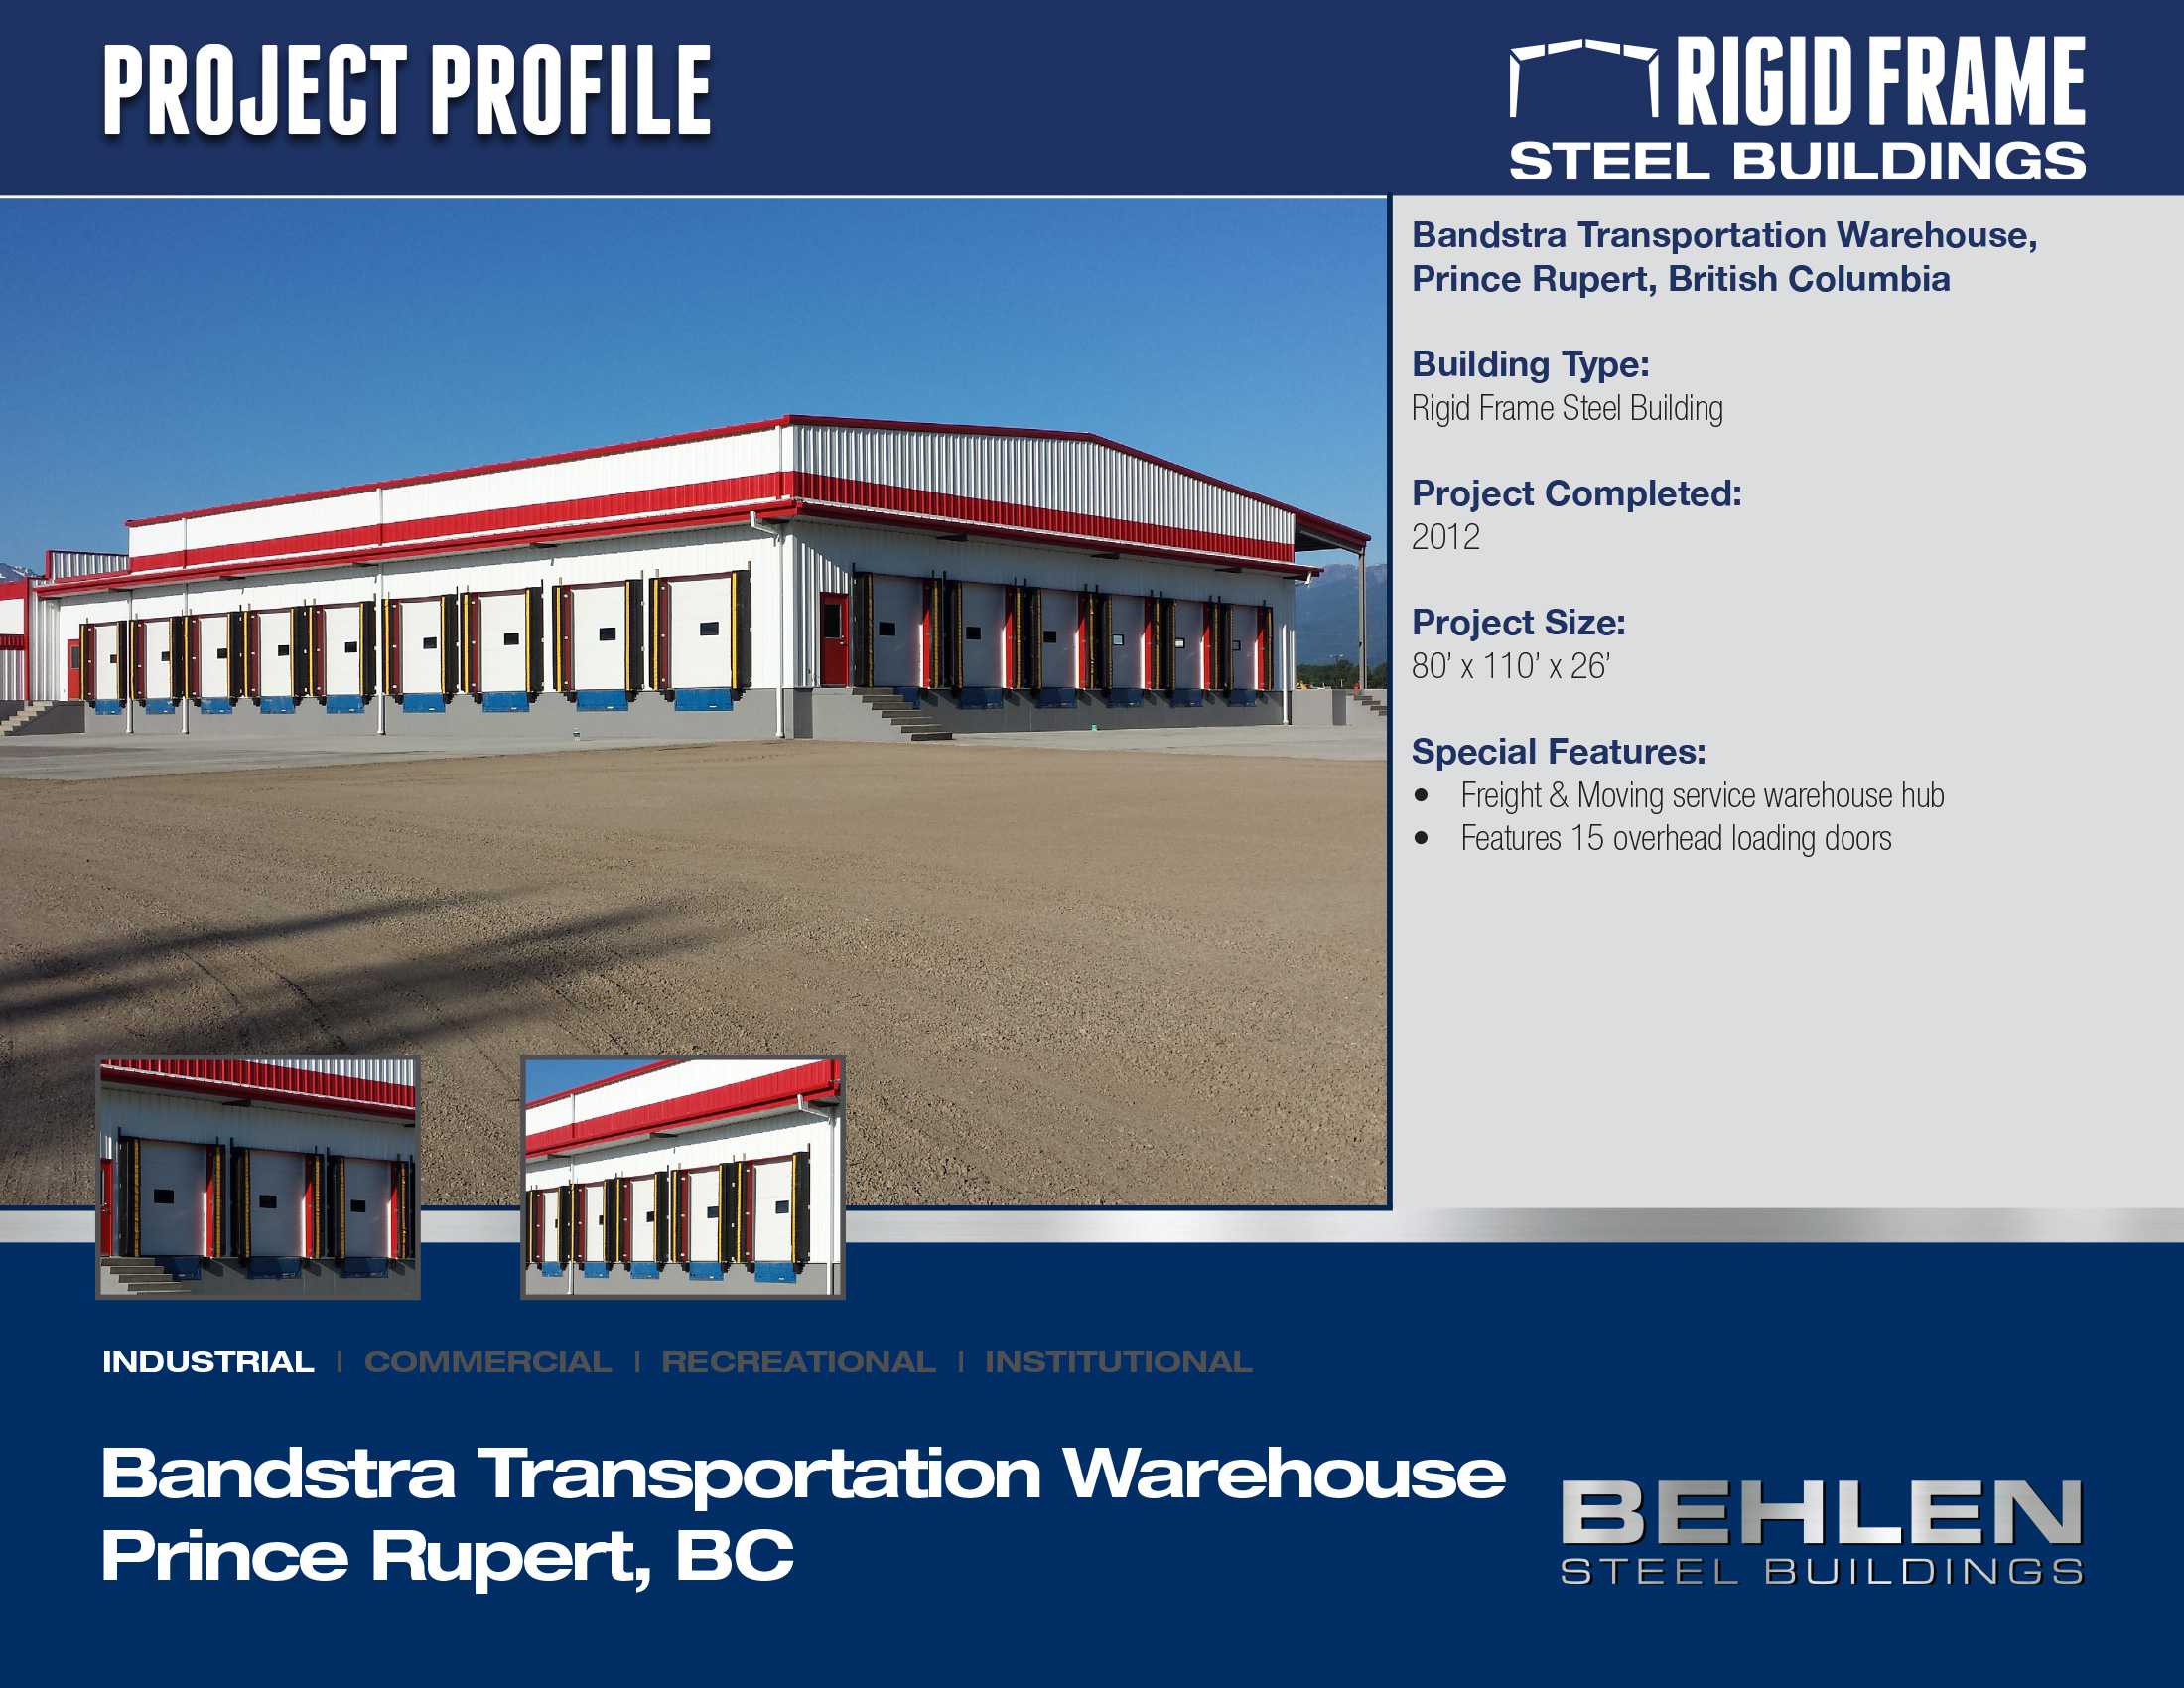 Bandstra Transportation Warehouse